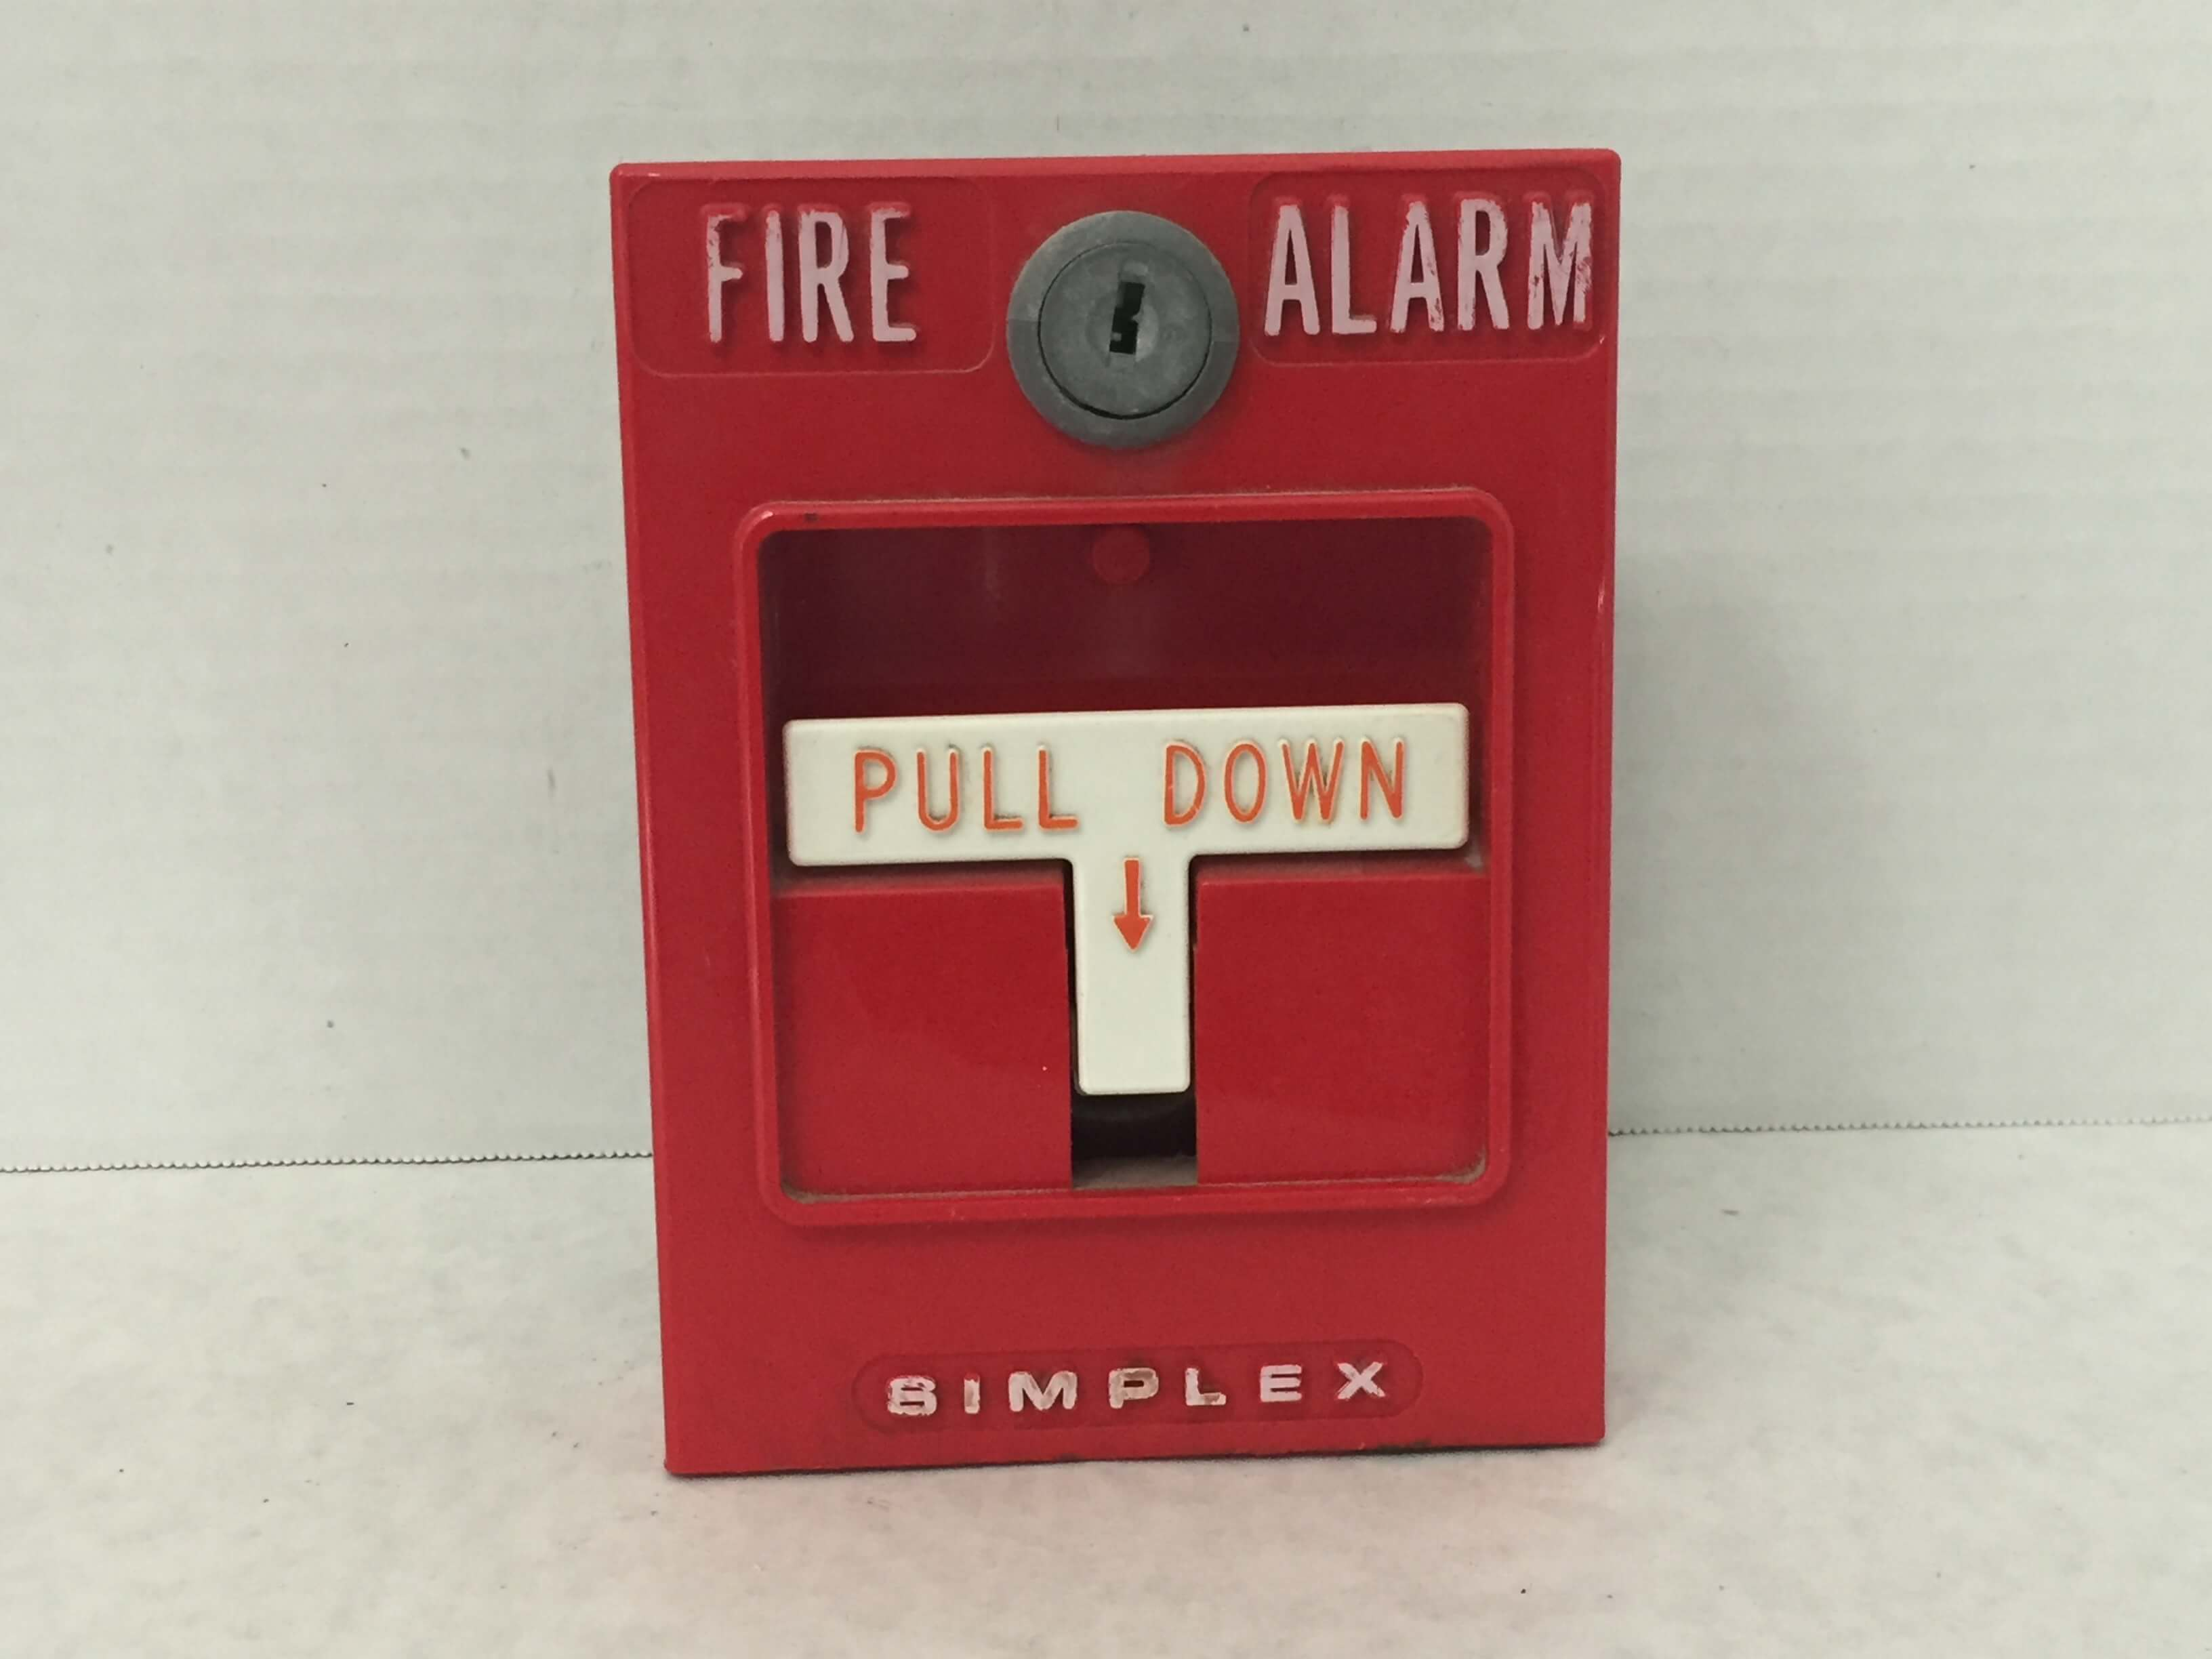 Simplex 4251 21 Firealarms Tv Jjinc24 U8ol0 S Fire